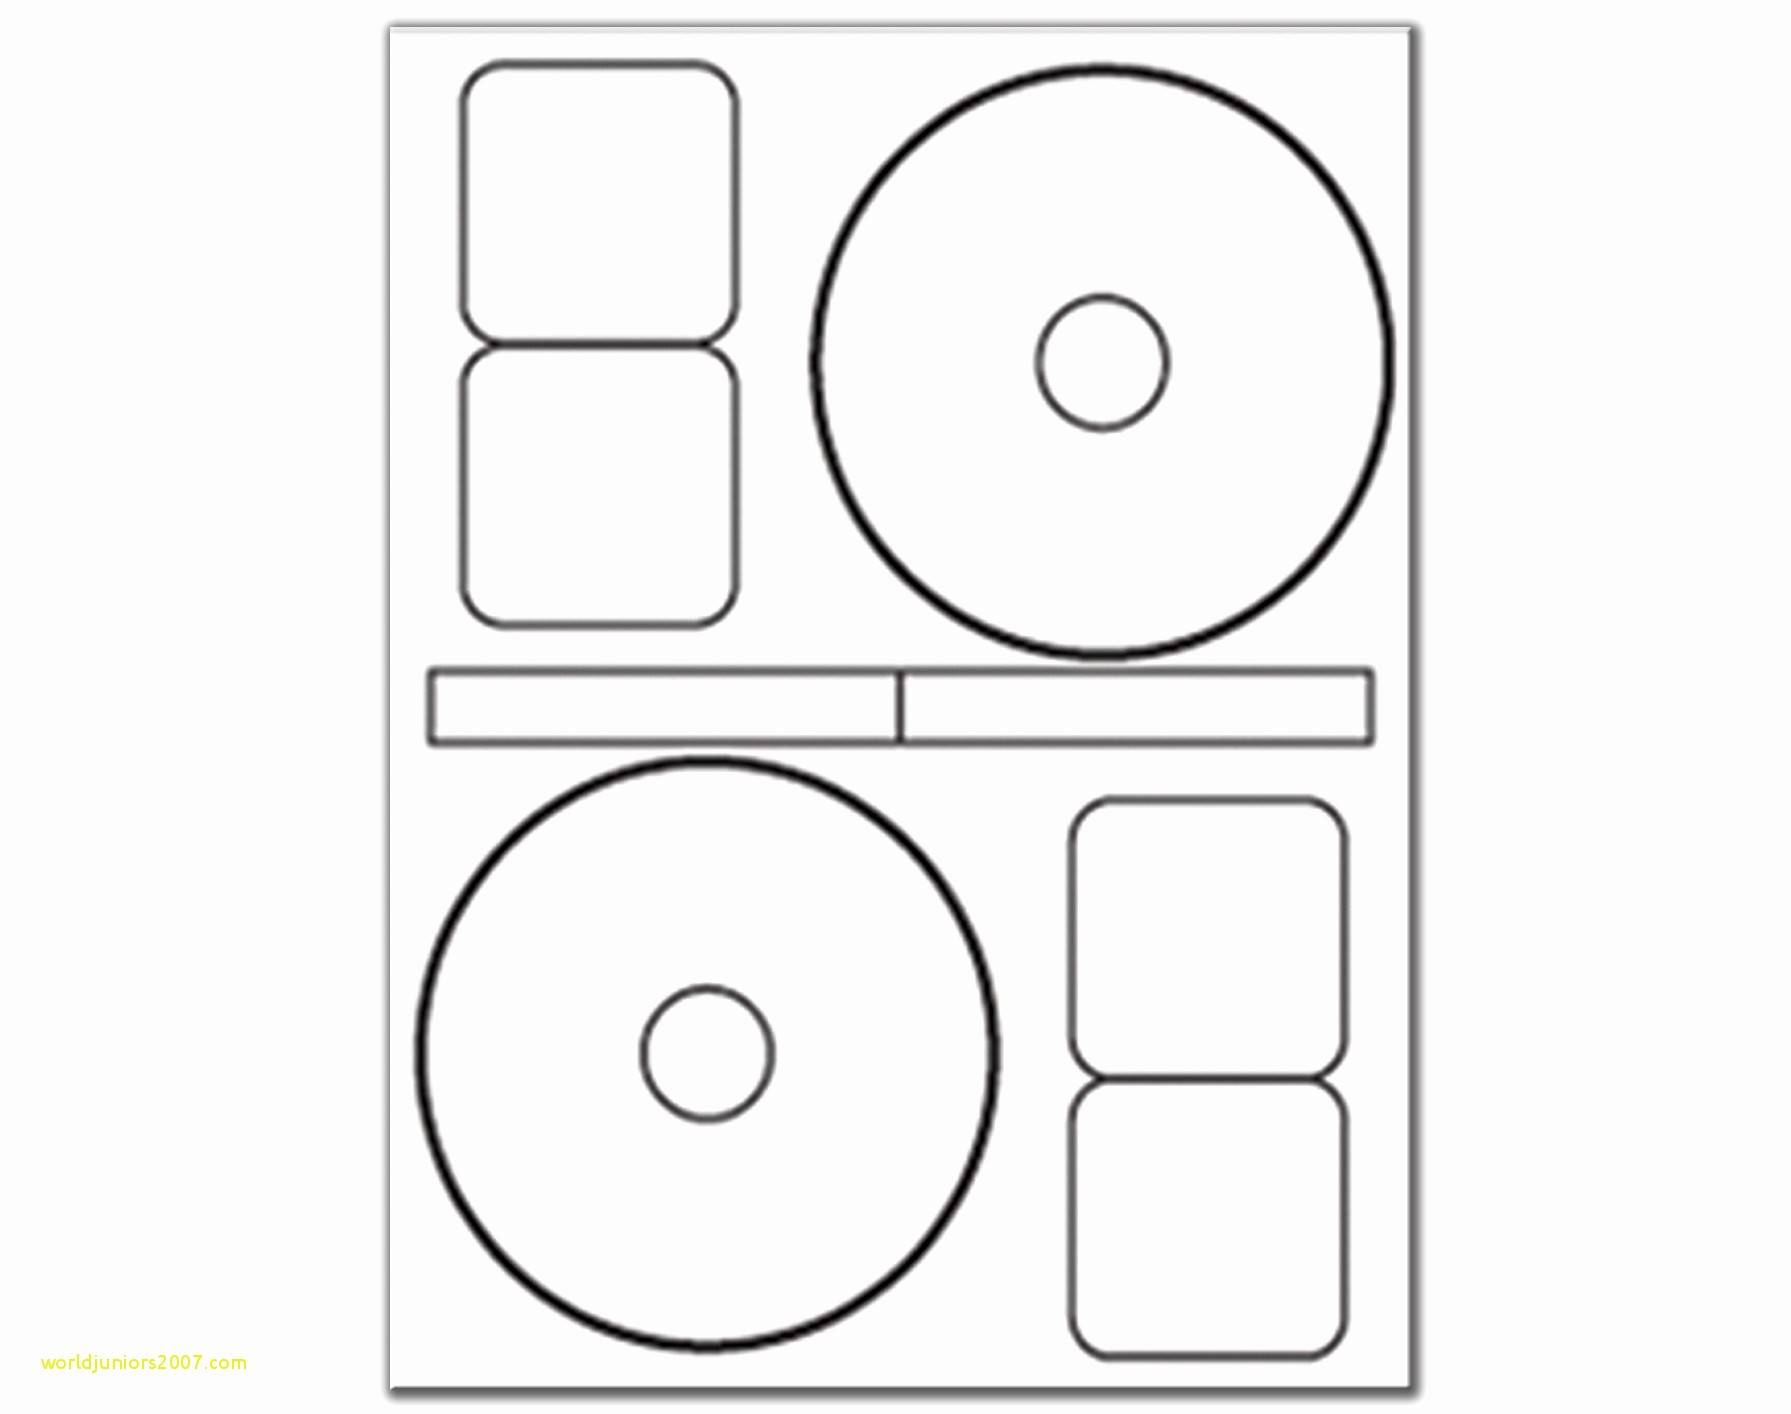 Template For 5931 Avery Cd Labels